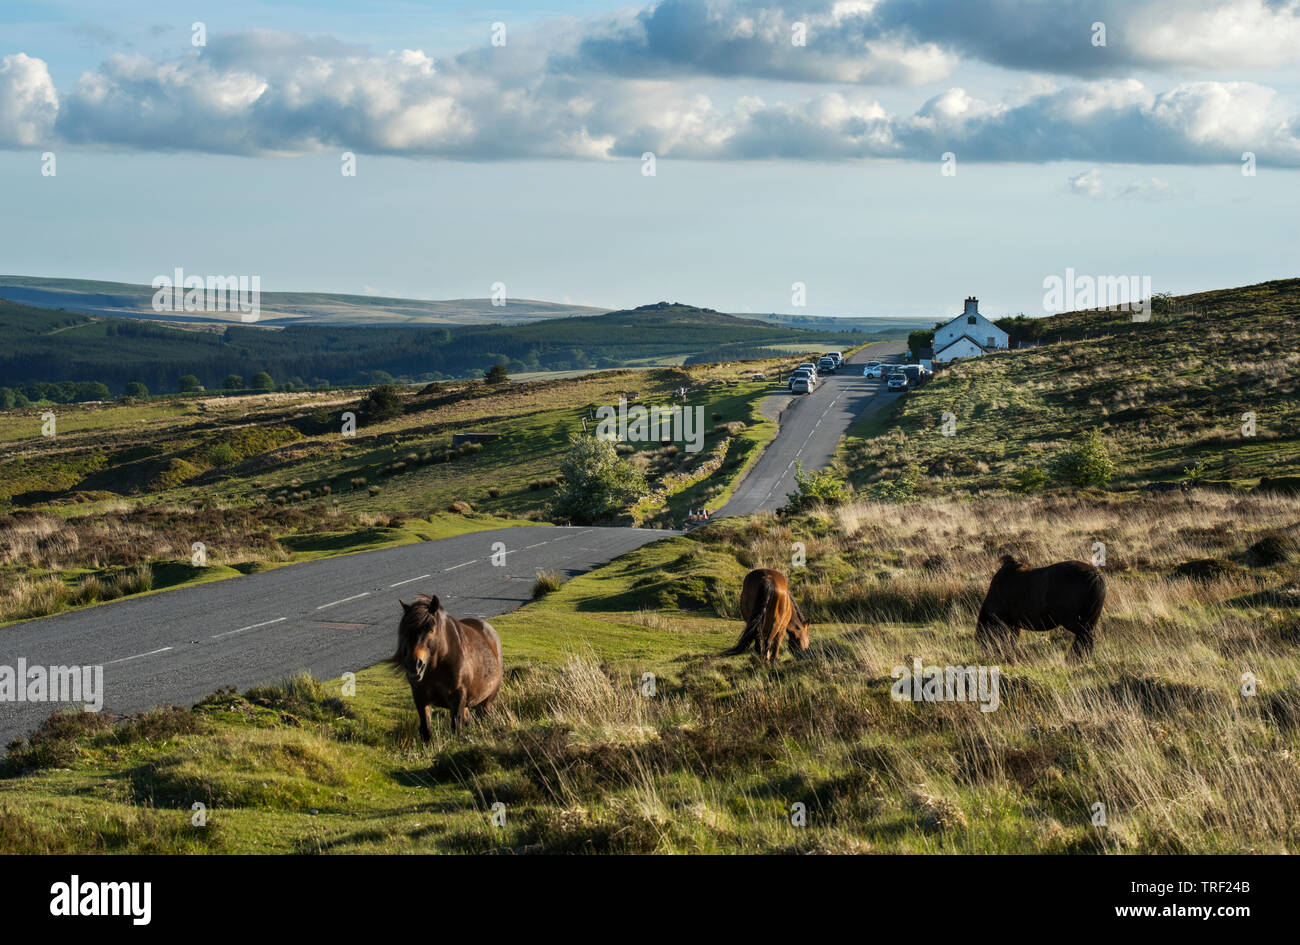 Warren House Inn and Dartmoor Hill Ponies on Dartmoor Devon England UK May 2019 The Warren House Inn is a remote and isolated public house in the hear - Stock Image